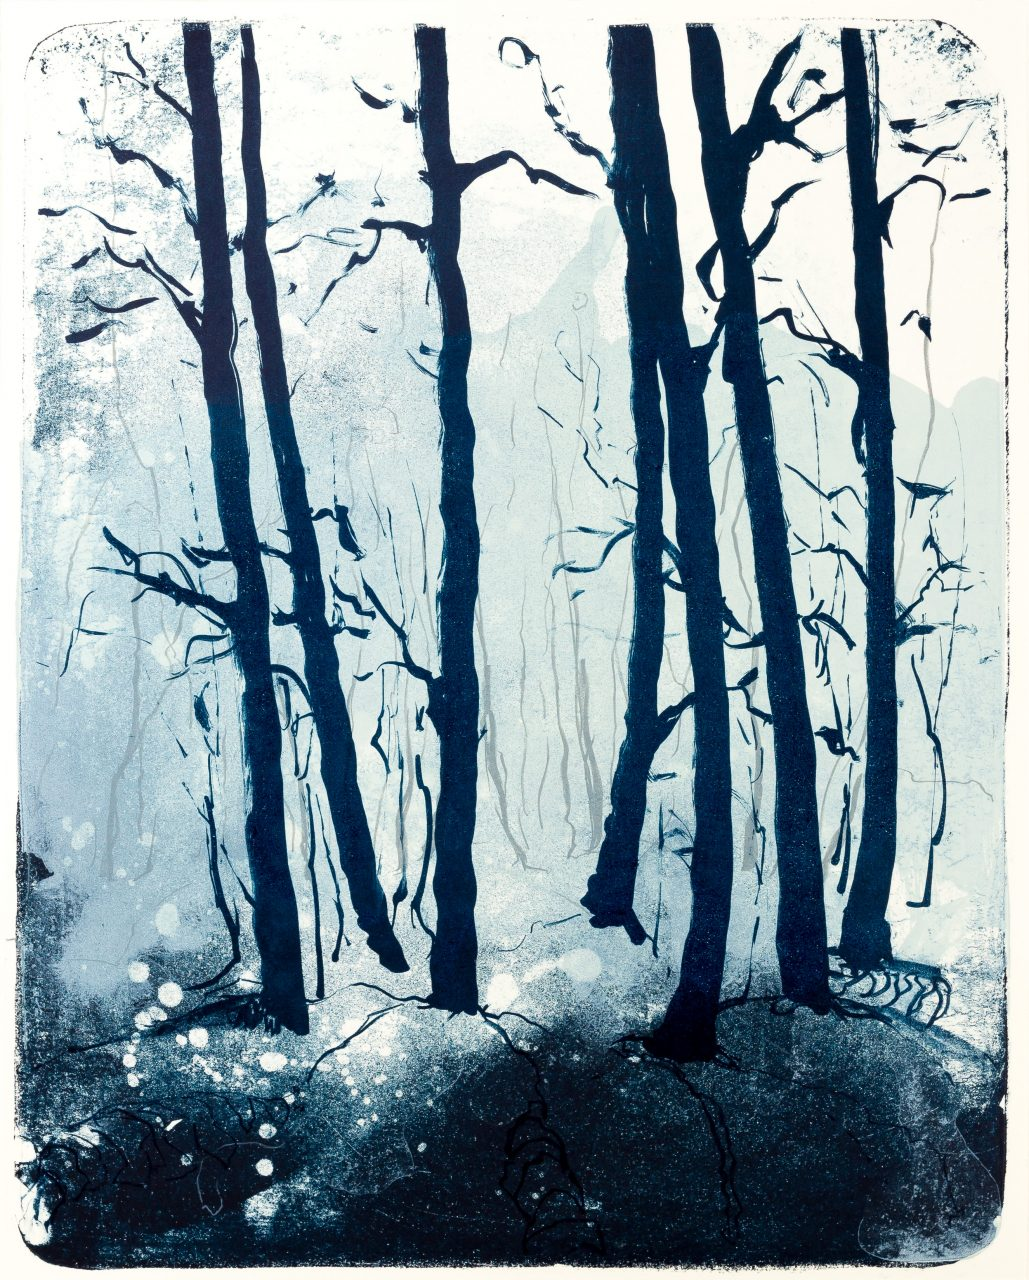 Wald X(N)-II, 2015, color lithograph, unique, 50x40 cm